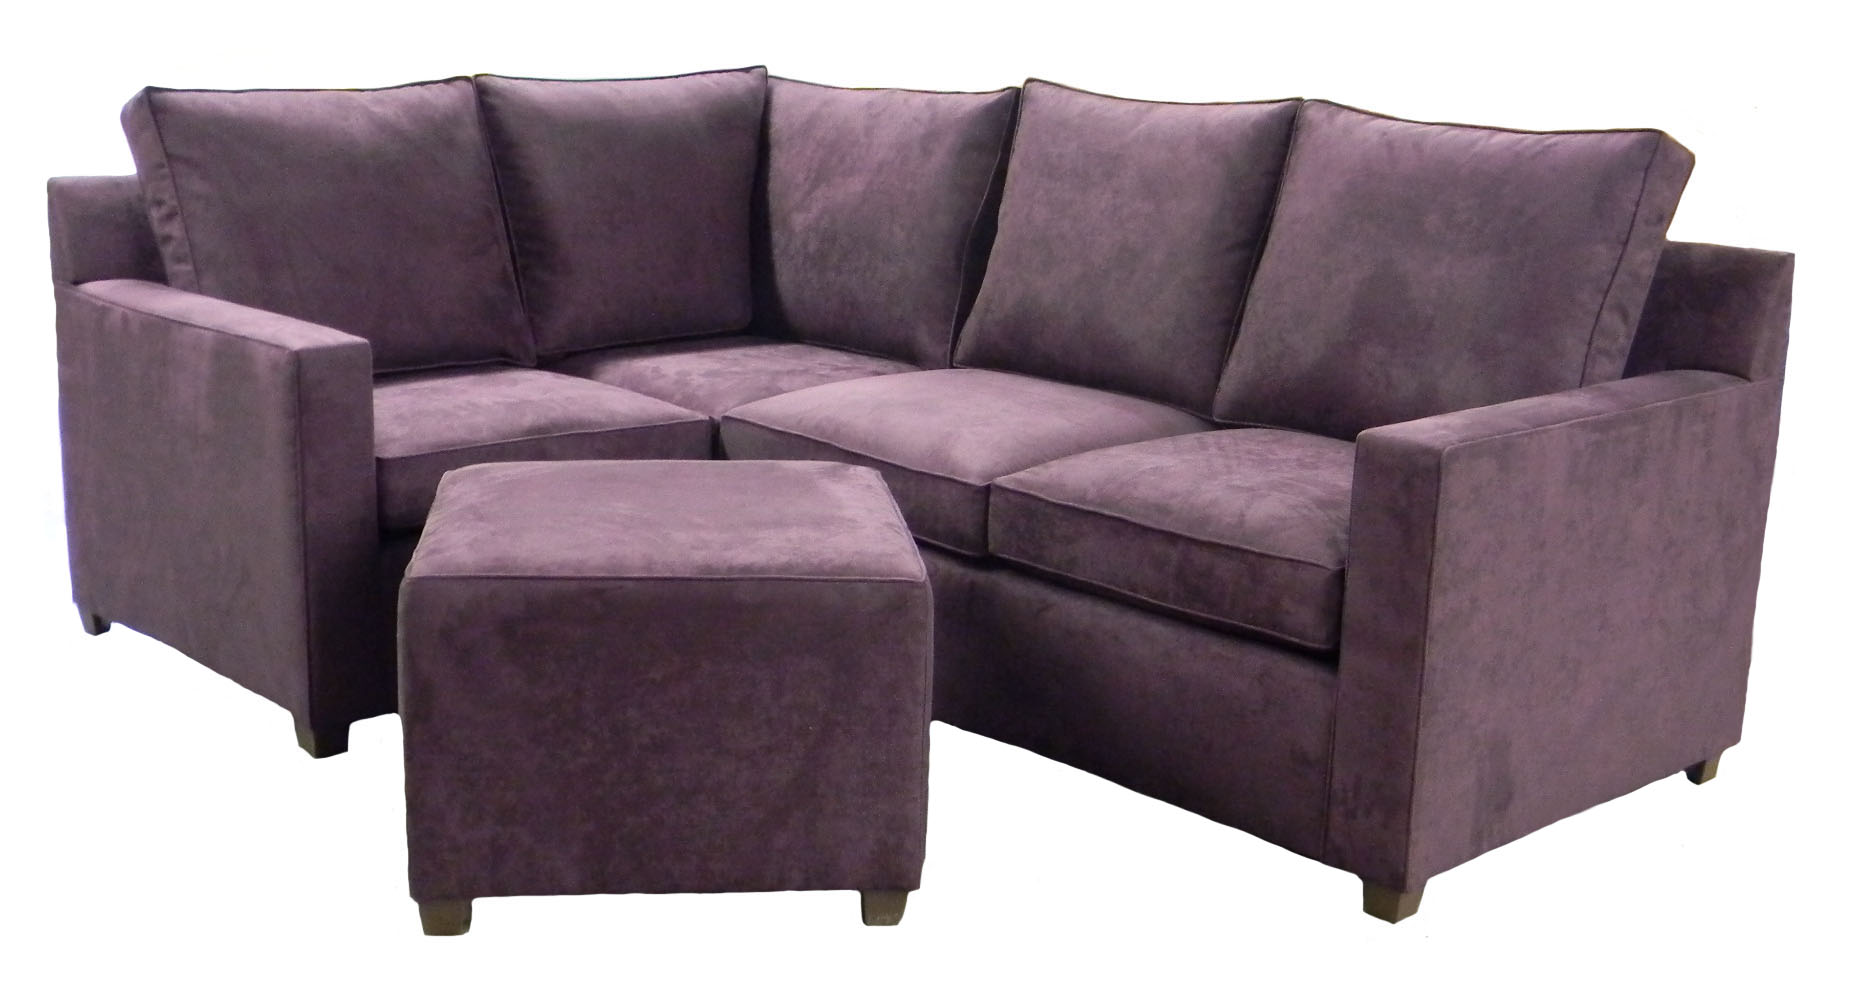 Top Purple Sectional Sofa